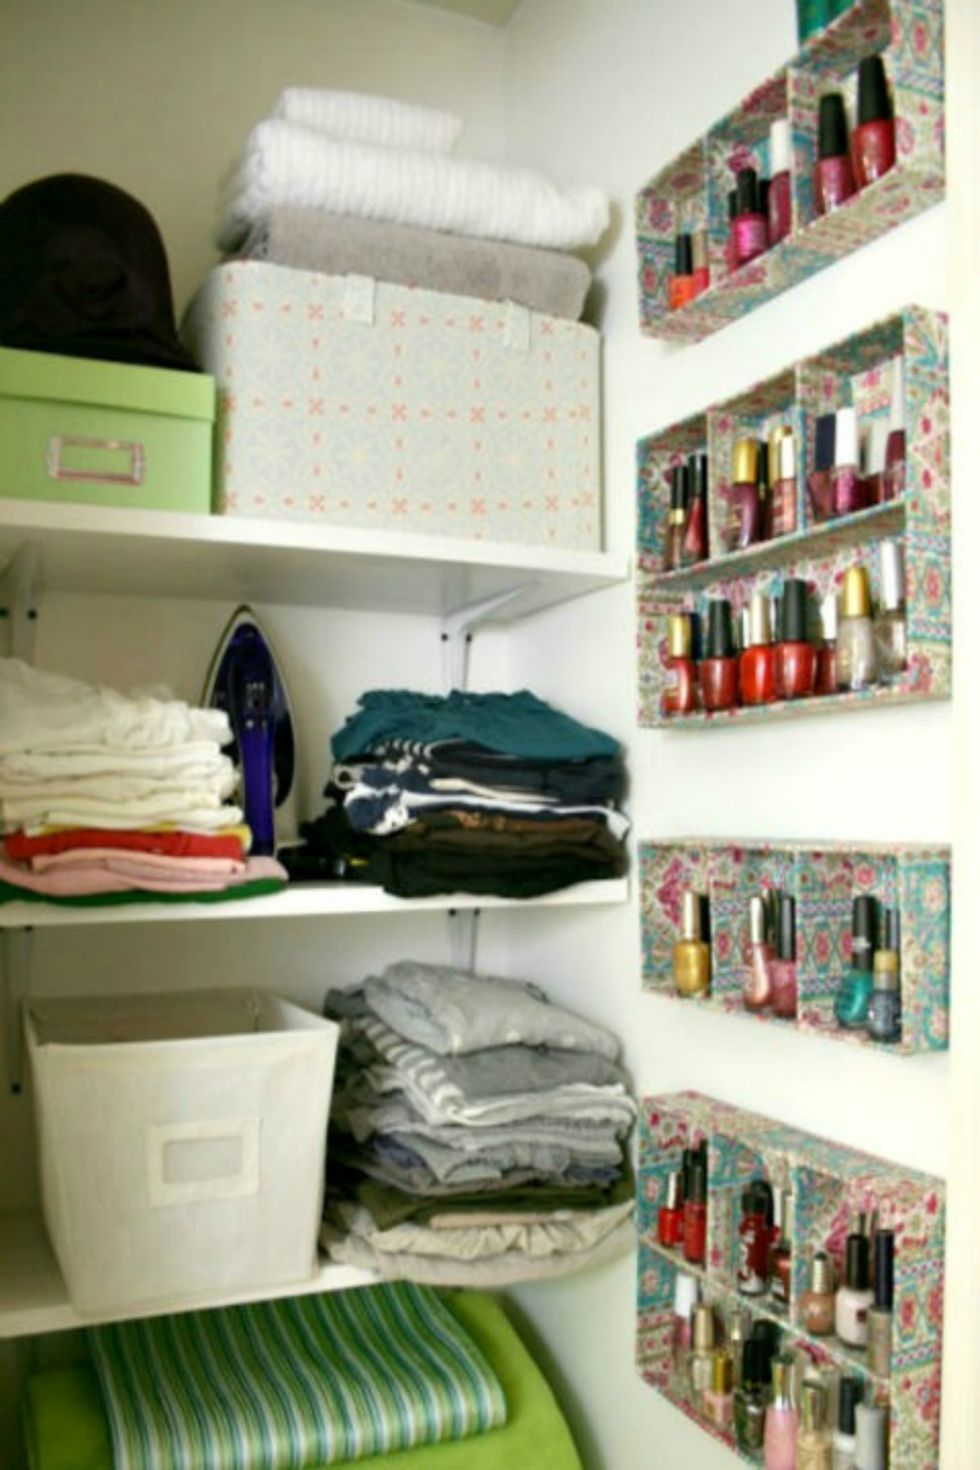 100 Home Organization Tips - How To Organize Your Home